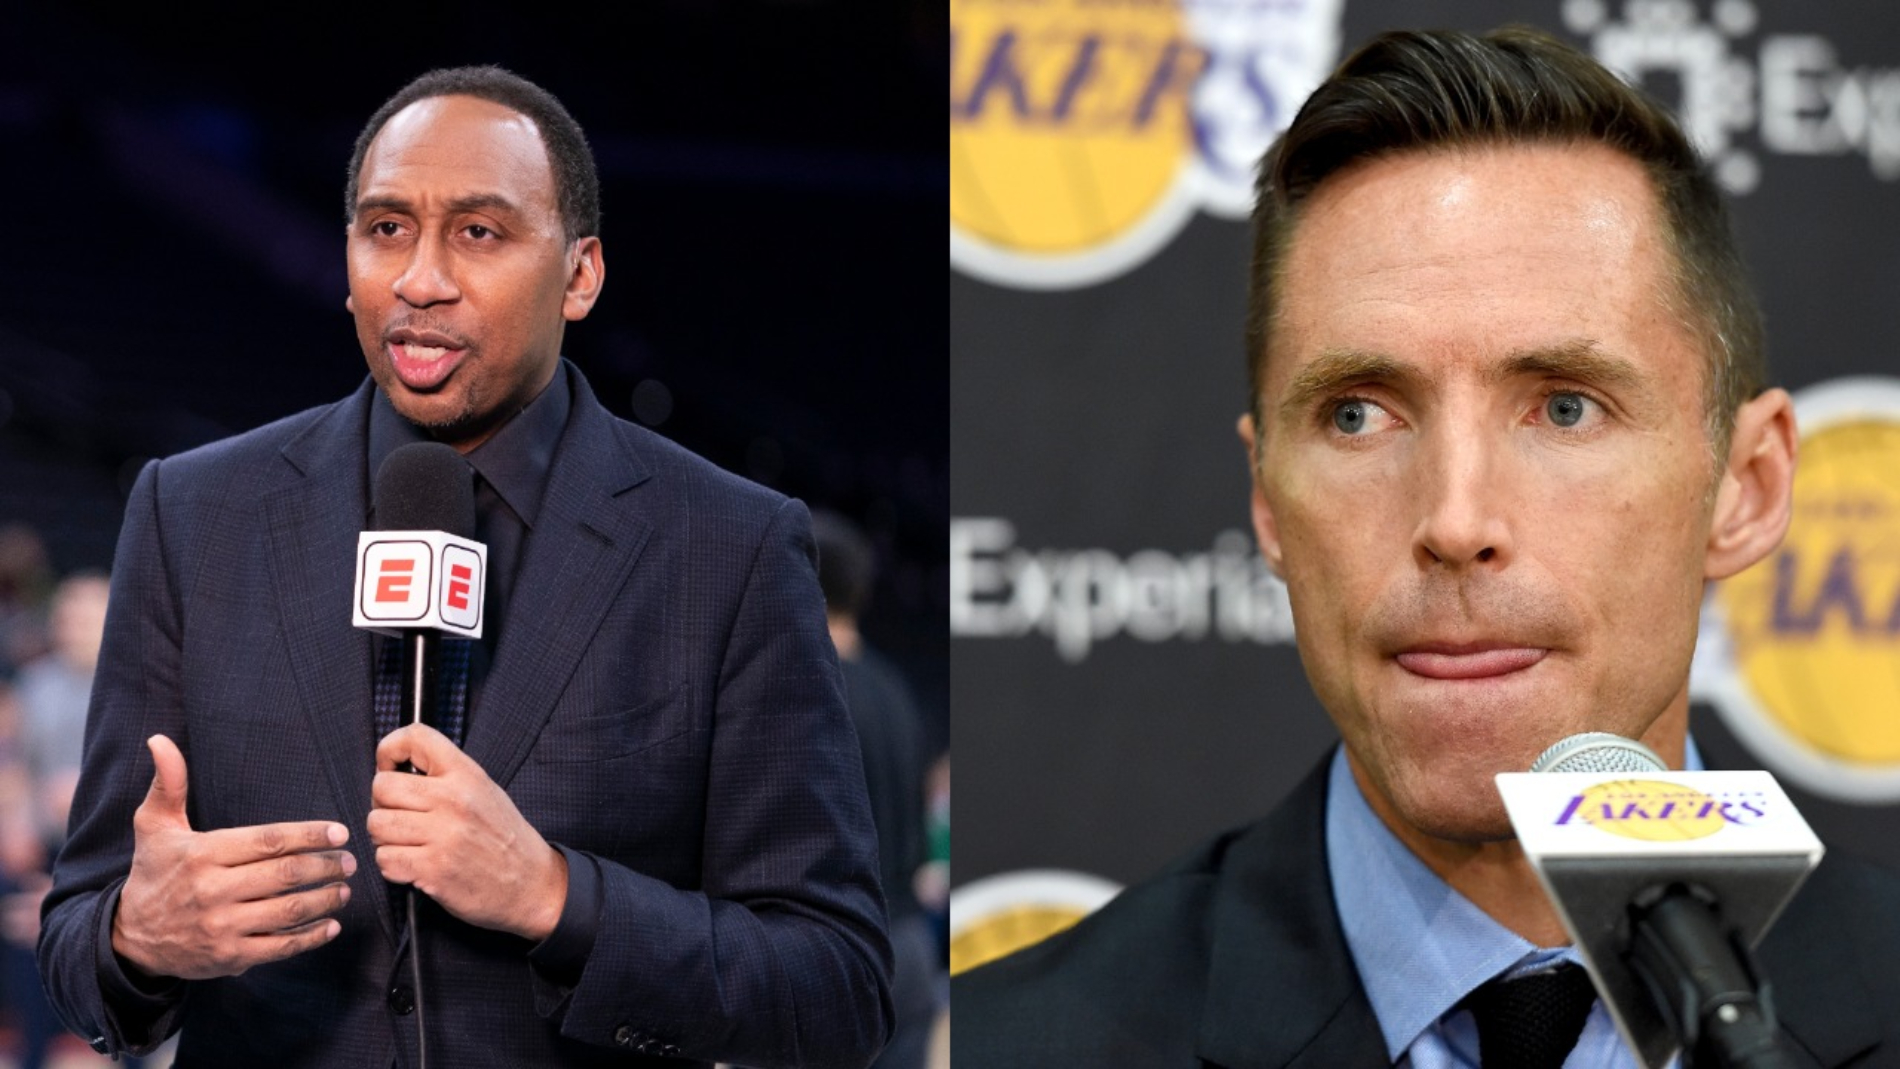 The Brooklyn Nets' hiring of Steve Nash shocked the basketball world. Recently, Stephen A. Smith ripped it, calling it White privilege.